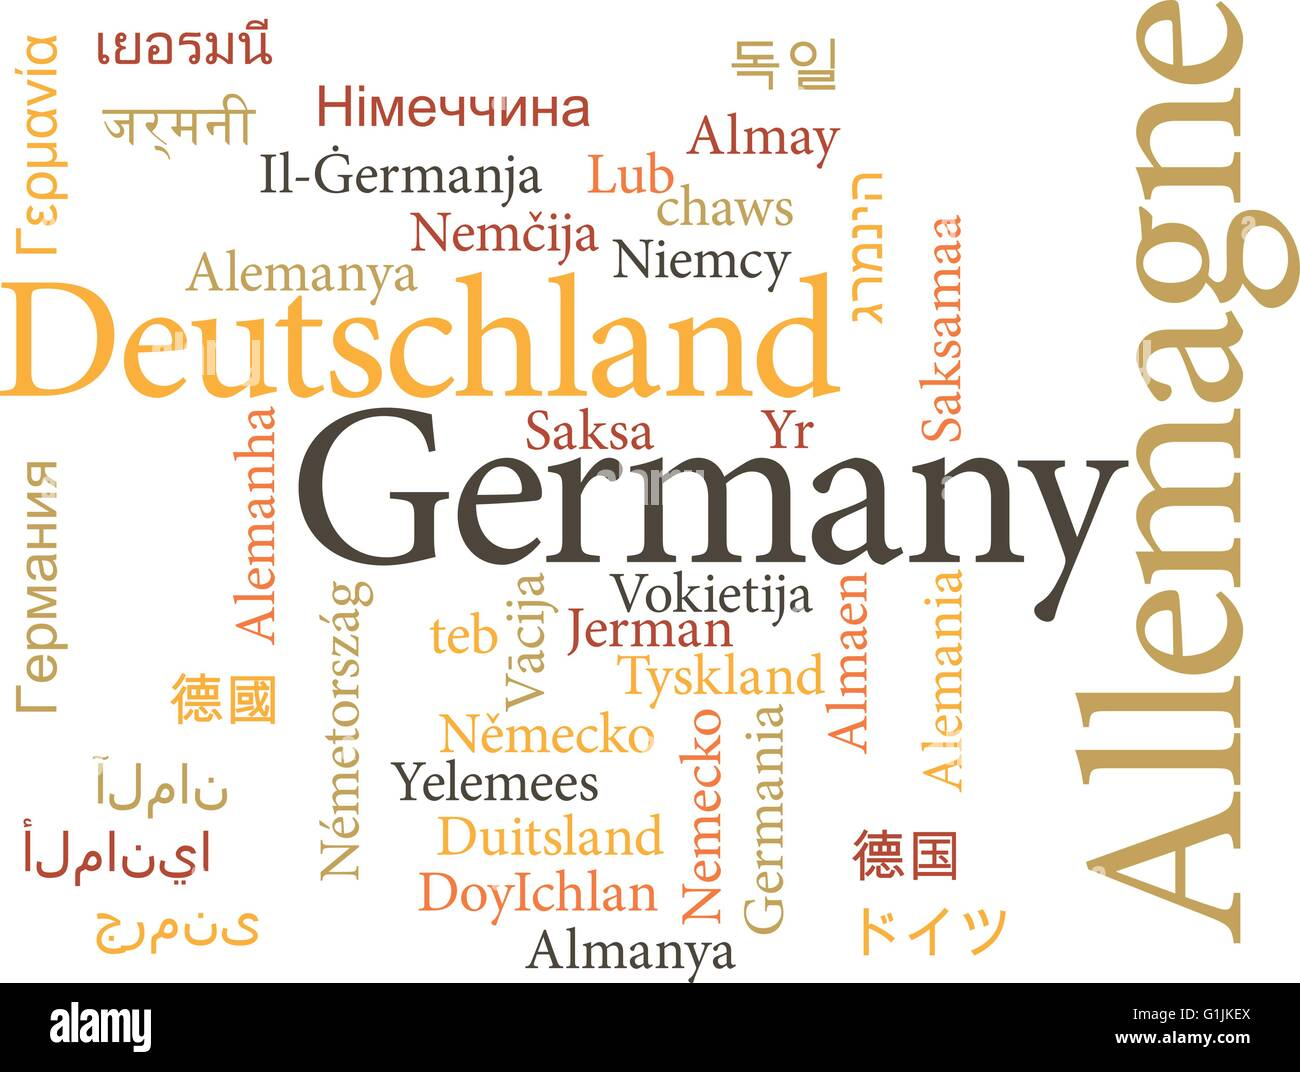 Vector illustration of Germany in word clouds isolated on white background - Stock Vector